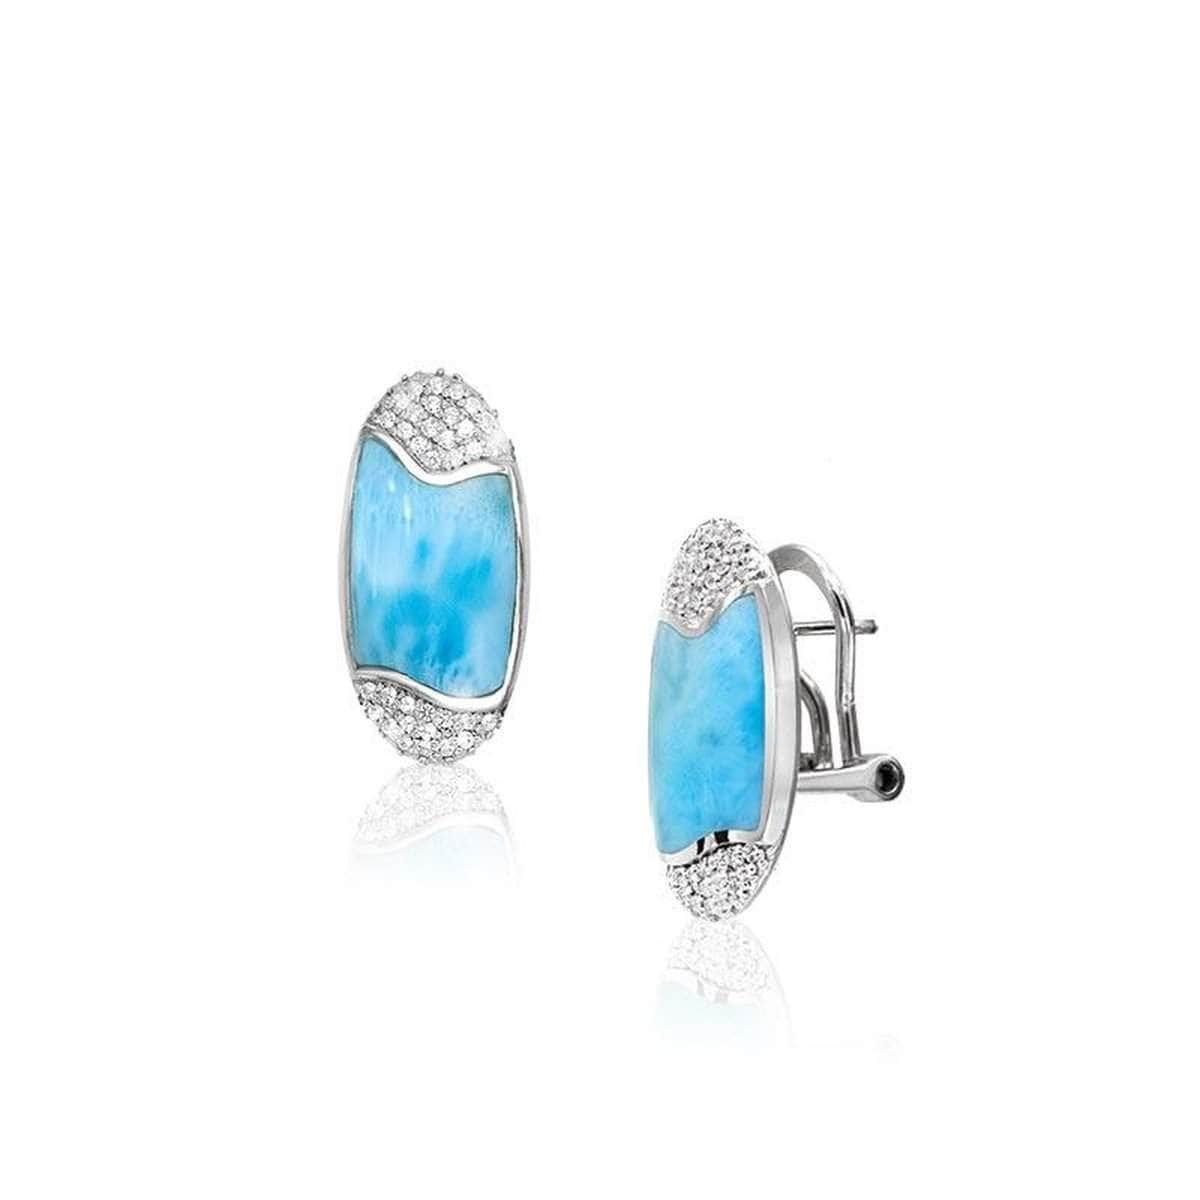 Cascadia Earrings - Ecasc00-00-Marahlago Larimar-Renee Taylor Gallery